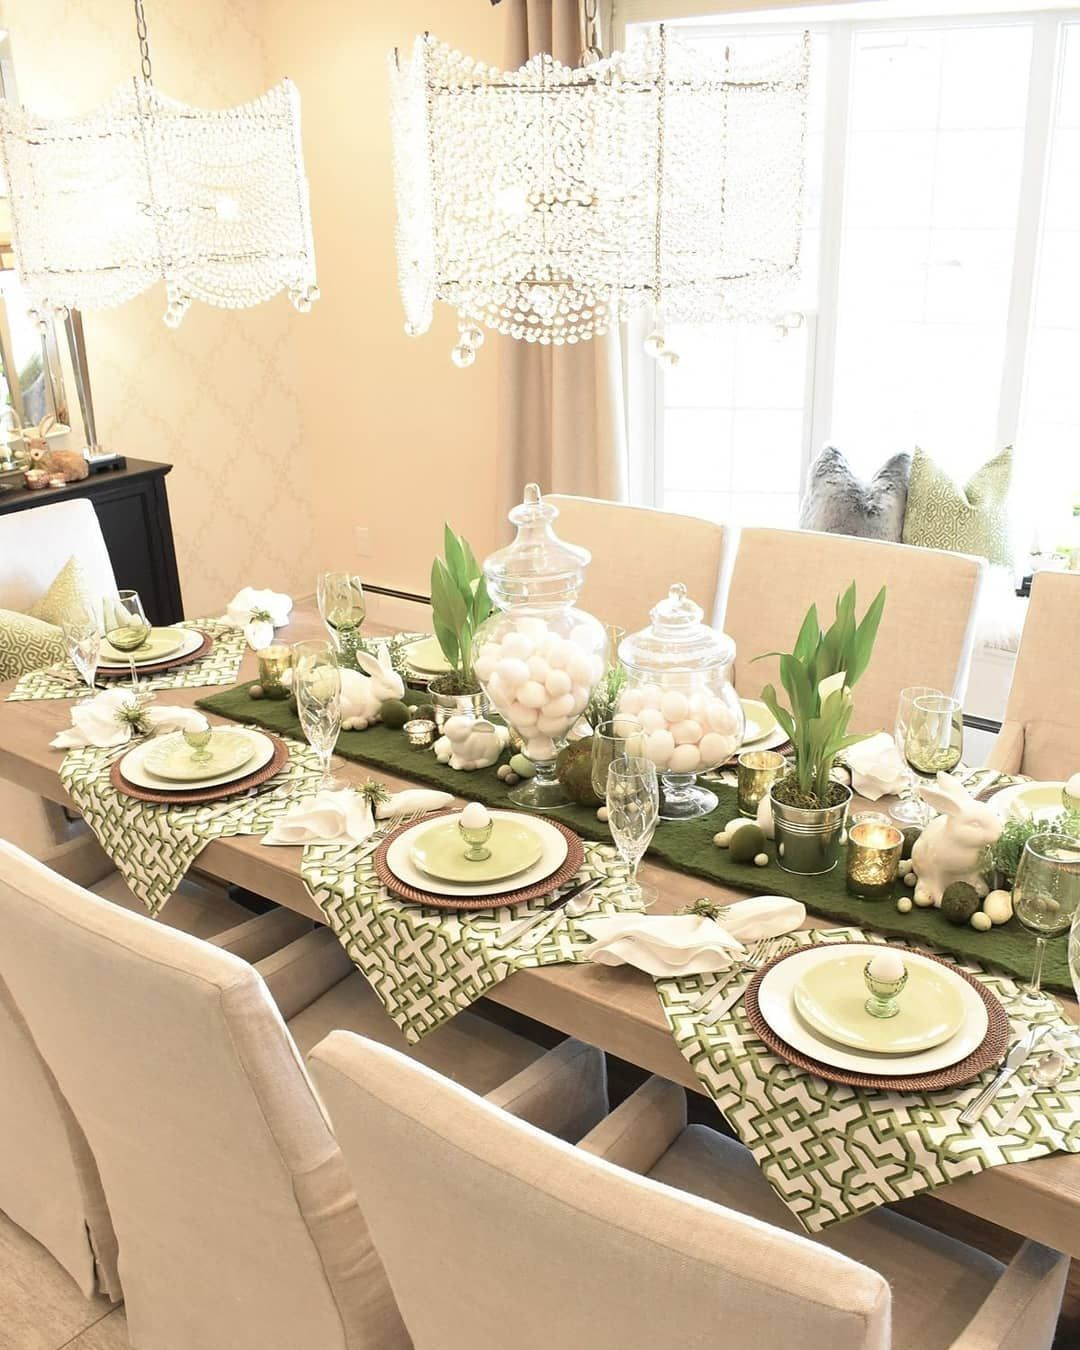 Pin By Janie Shelton On Deco In 2020 Easter Dinner Table Spring Table Decor Easter Table Settings